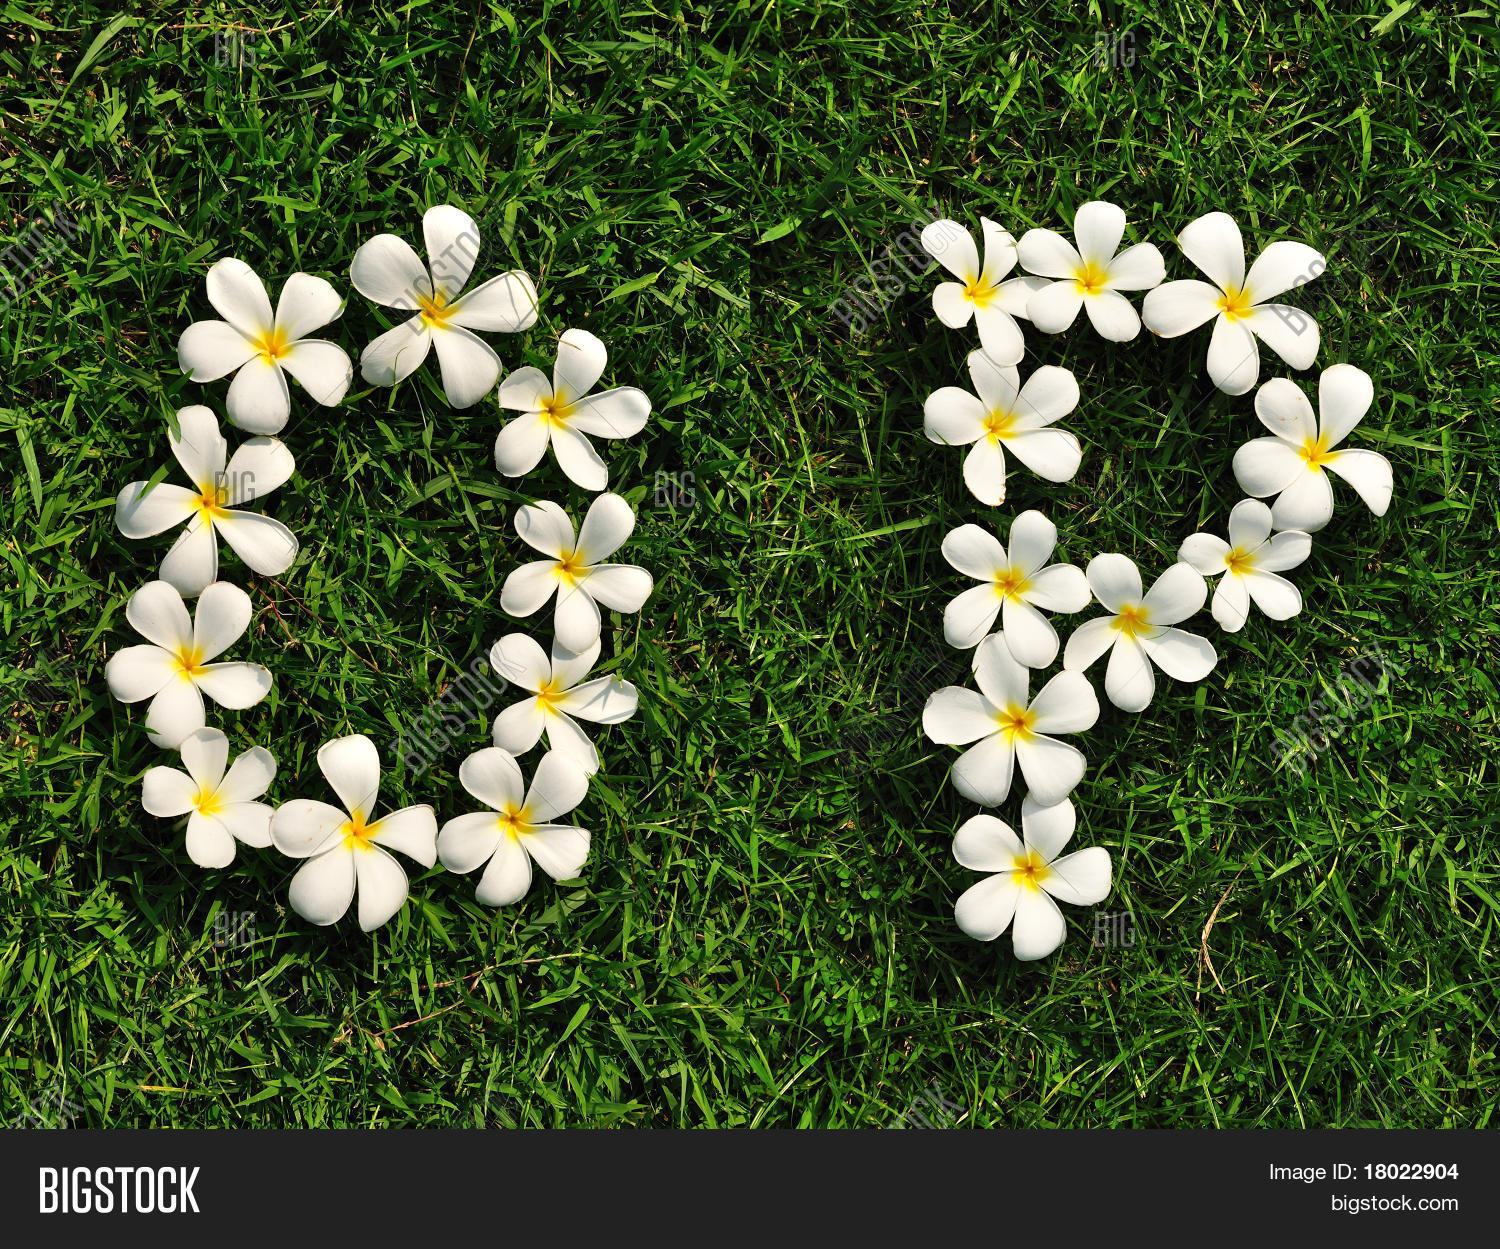 White Tropical Flowers Image Photo Free Trial Bigstock